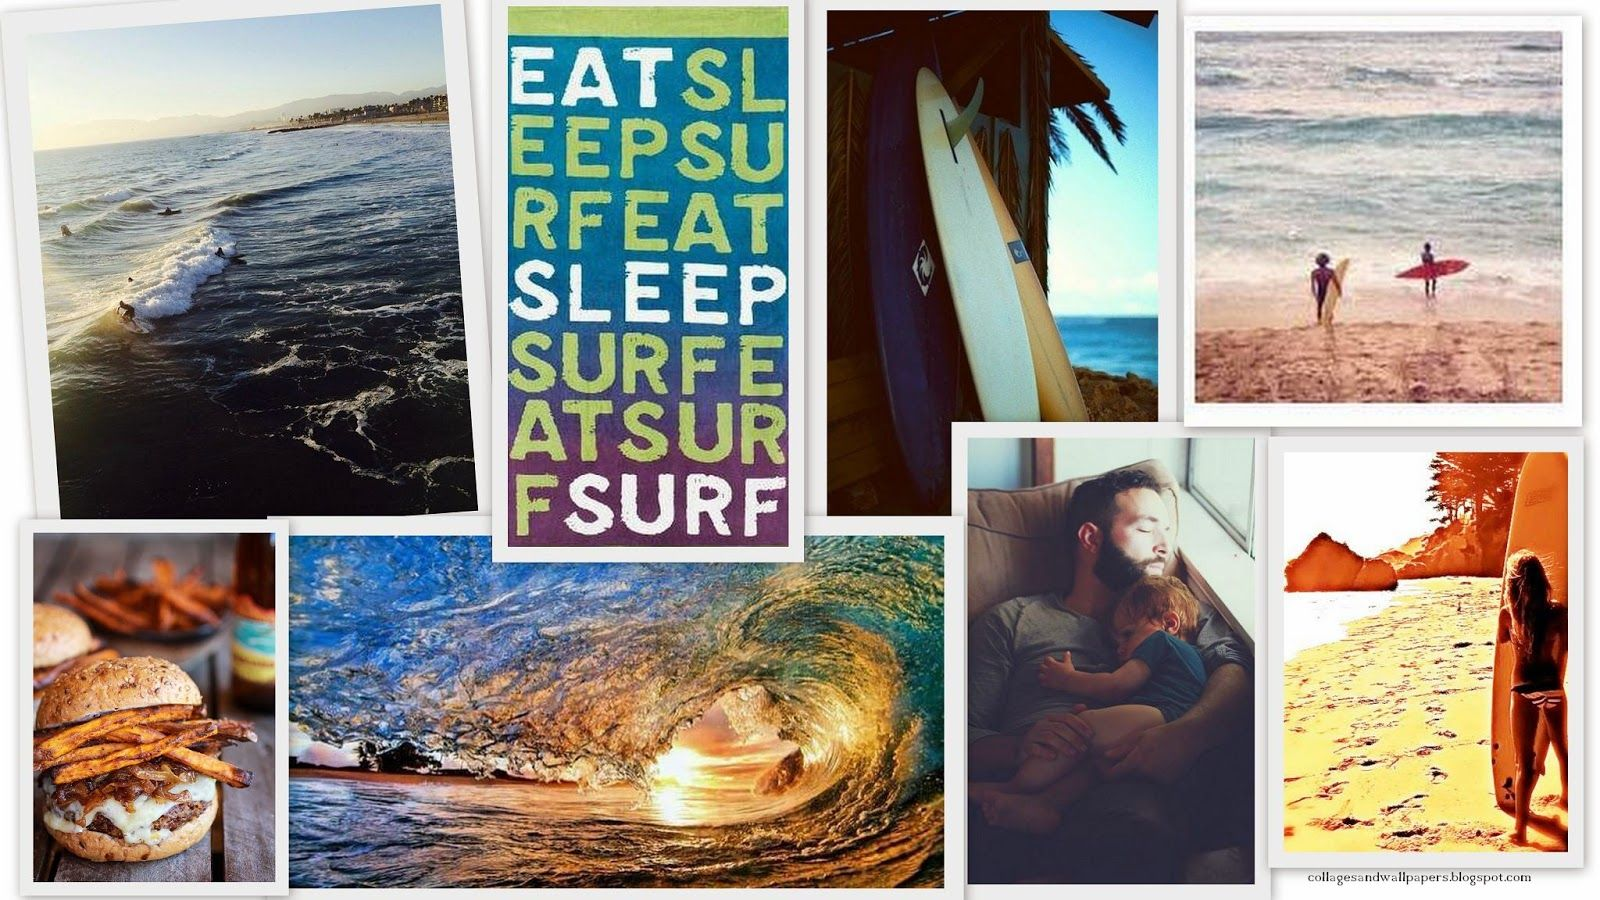 Collages & Wallpapers: ad libitum